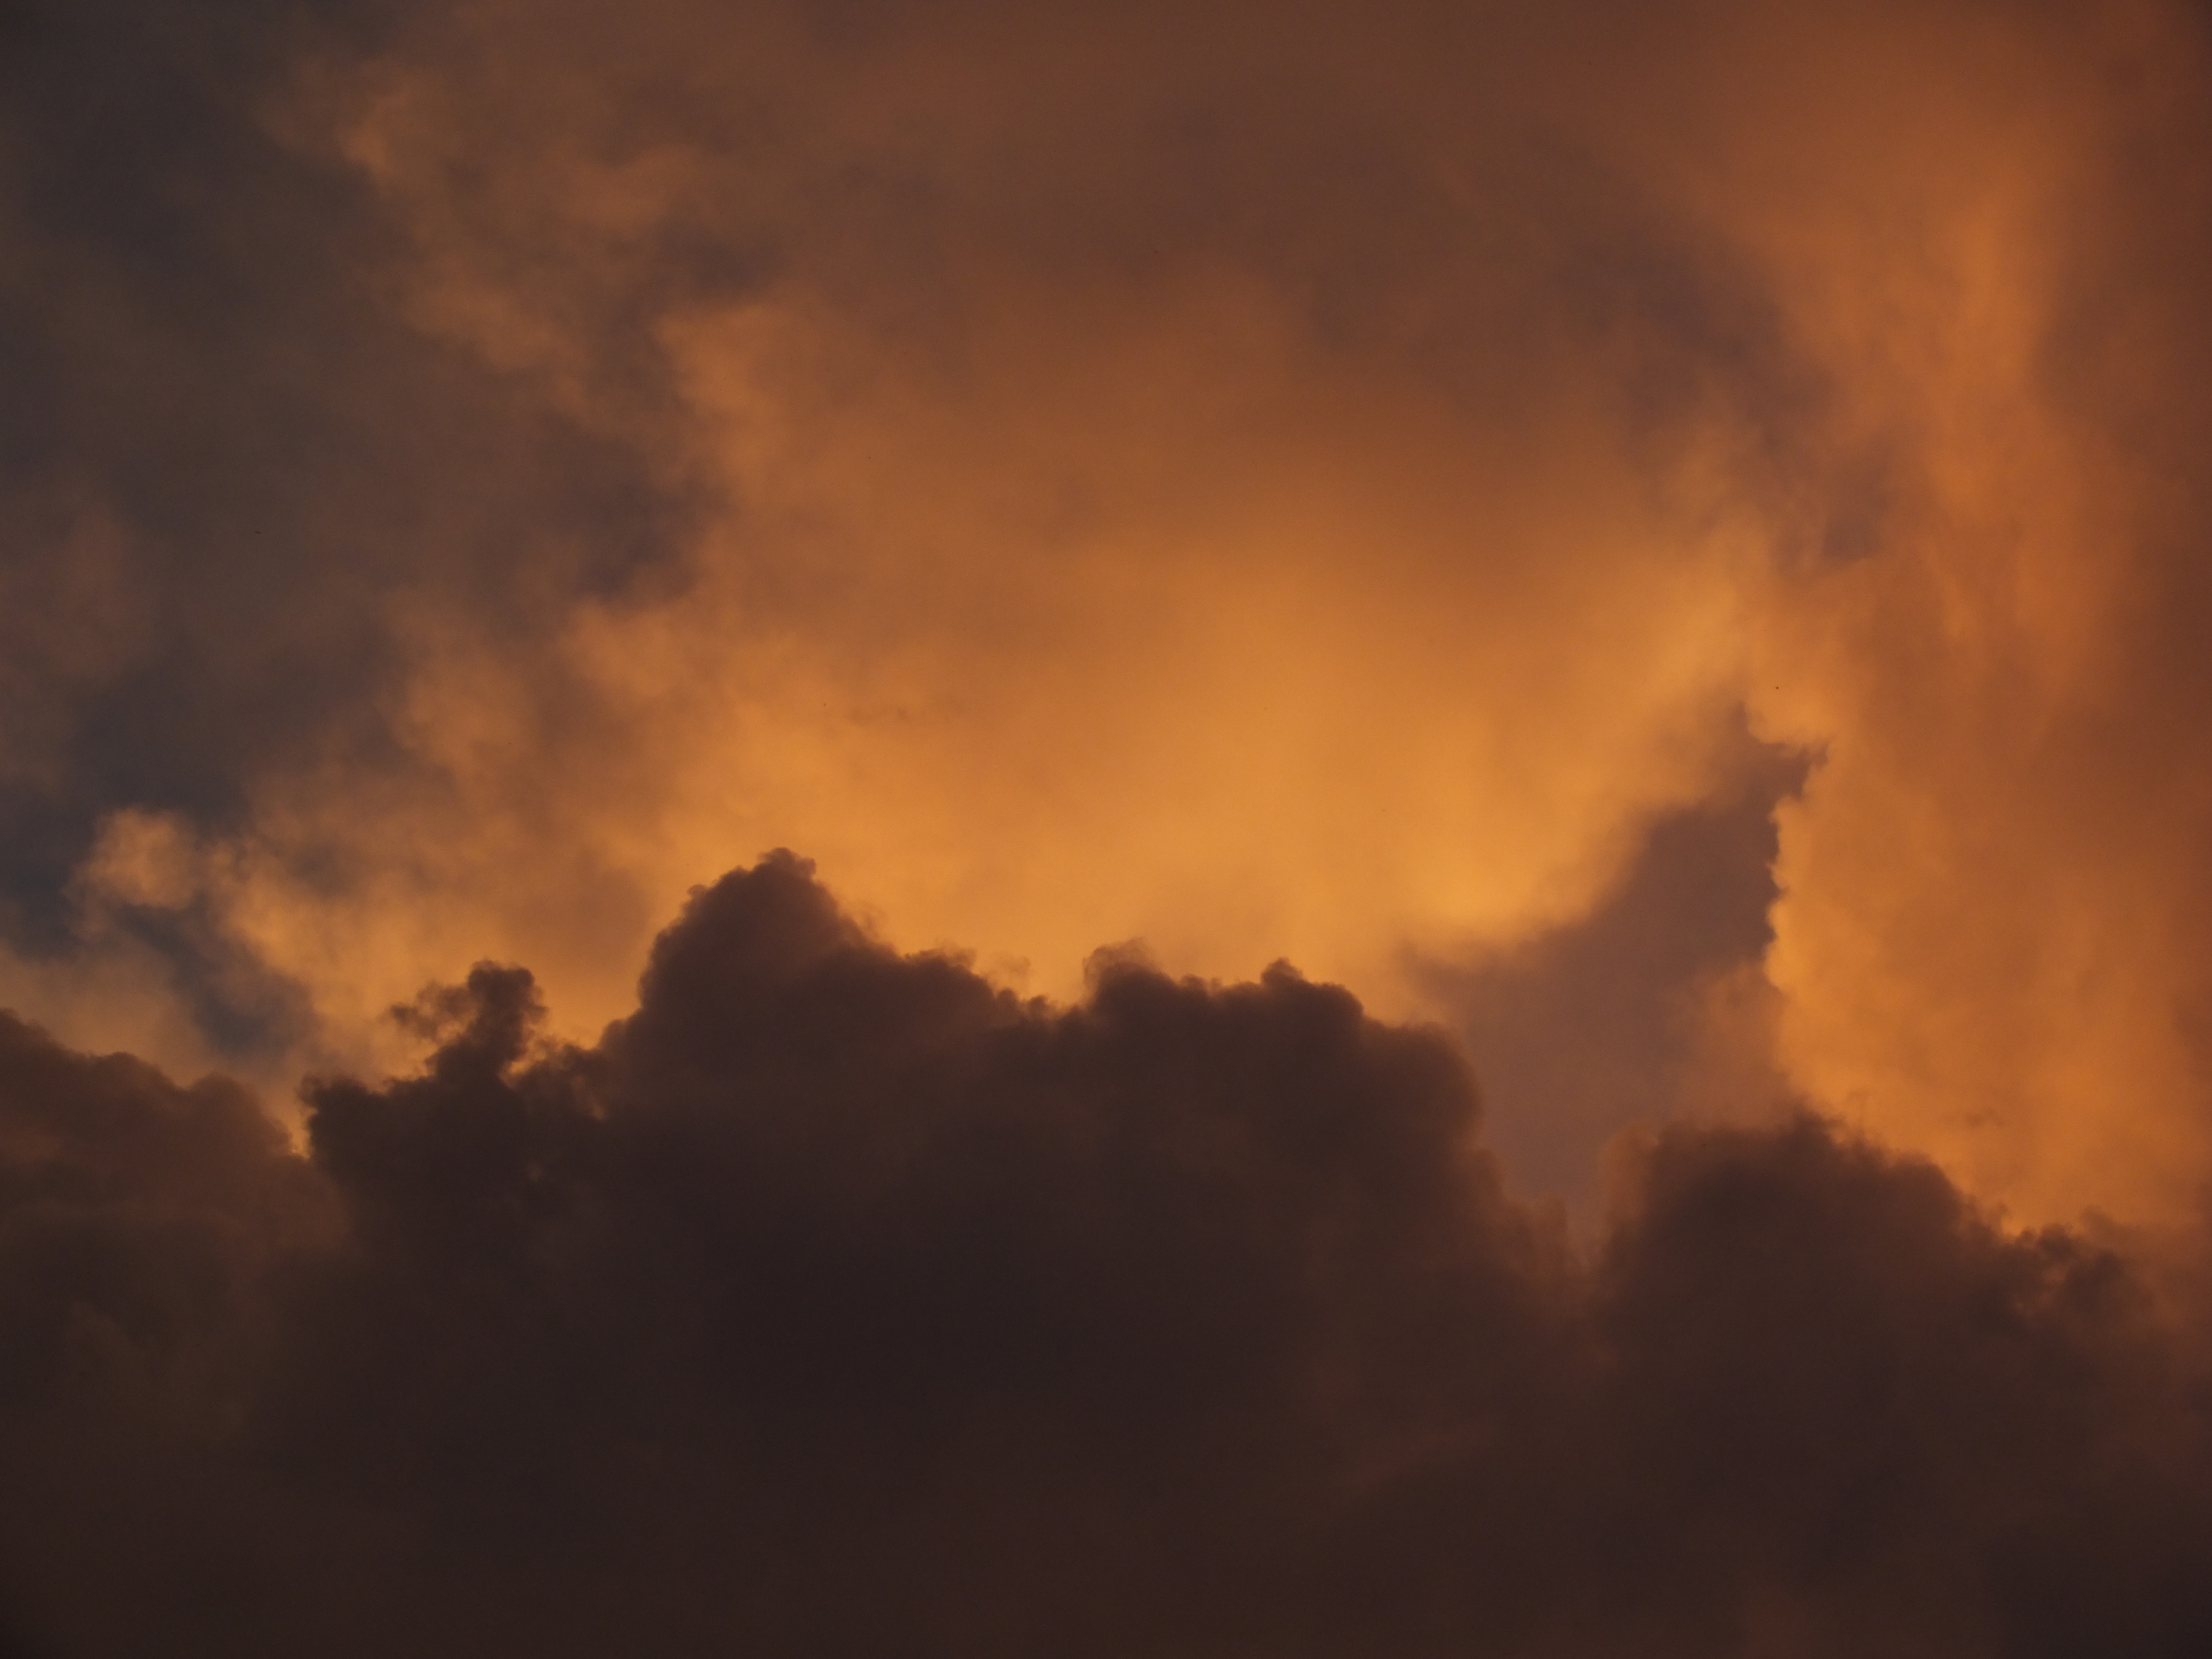 Nubes del atardecer, Atardecer, Cielo, Cloud, Clouds, HQ Photo